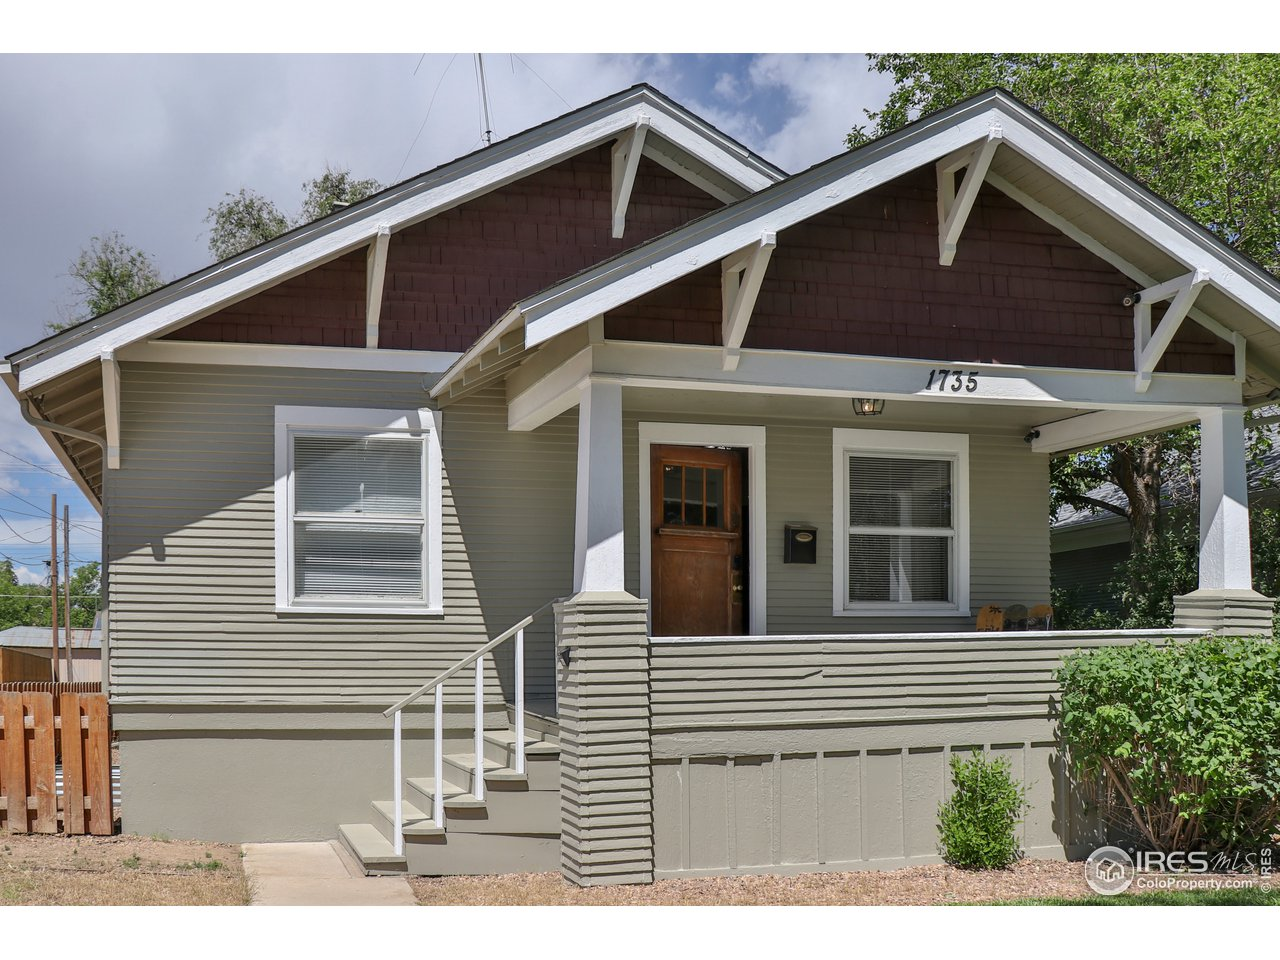 1735 6th Ave, Greeley CO 80631